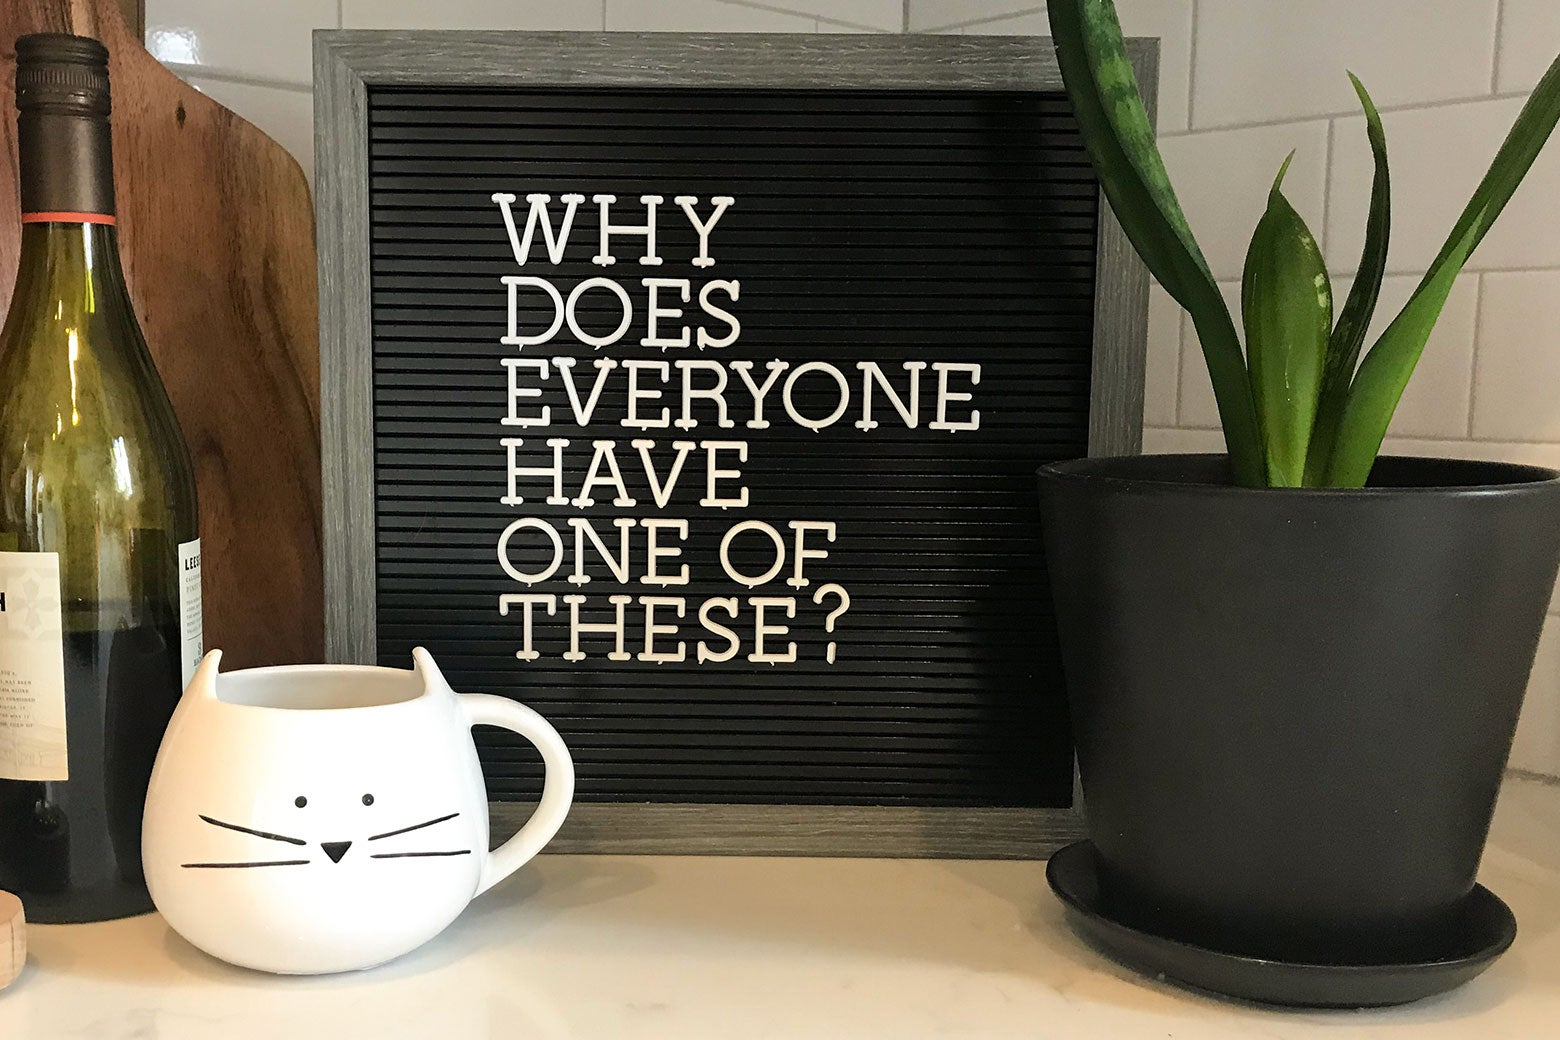 A letterboard with an important question